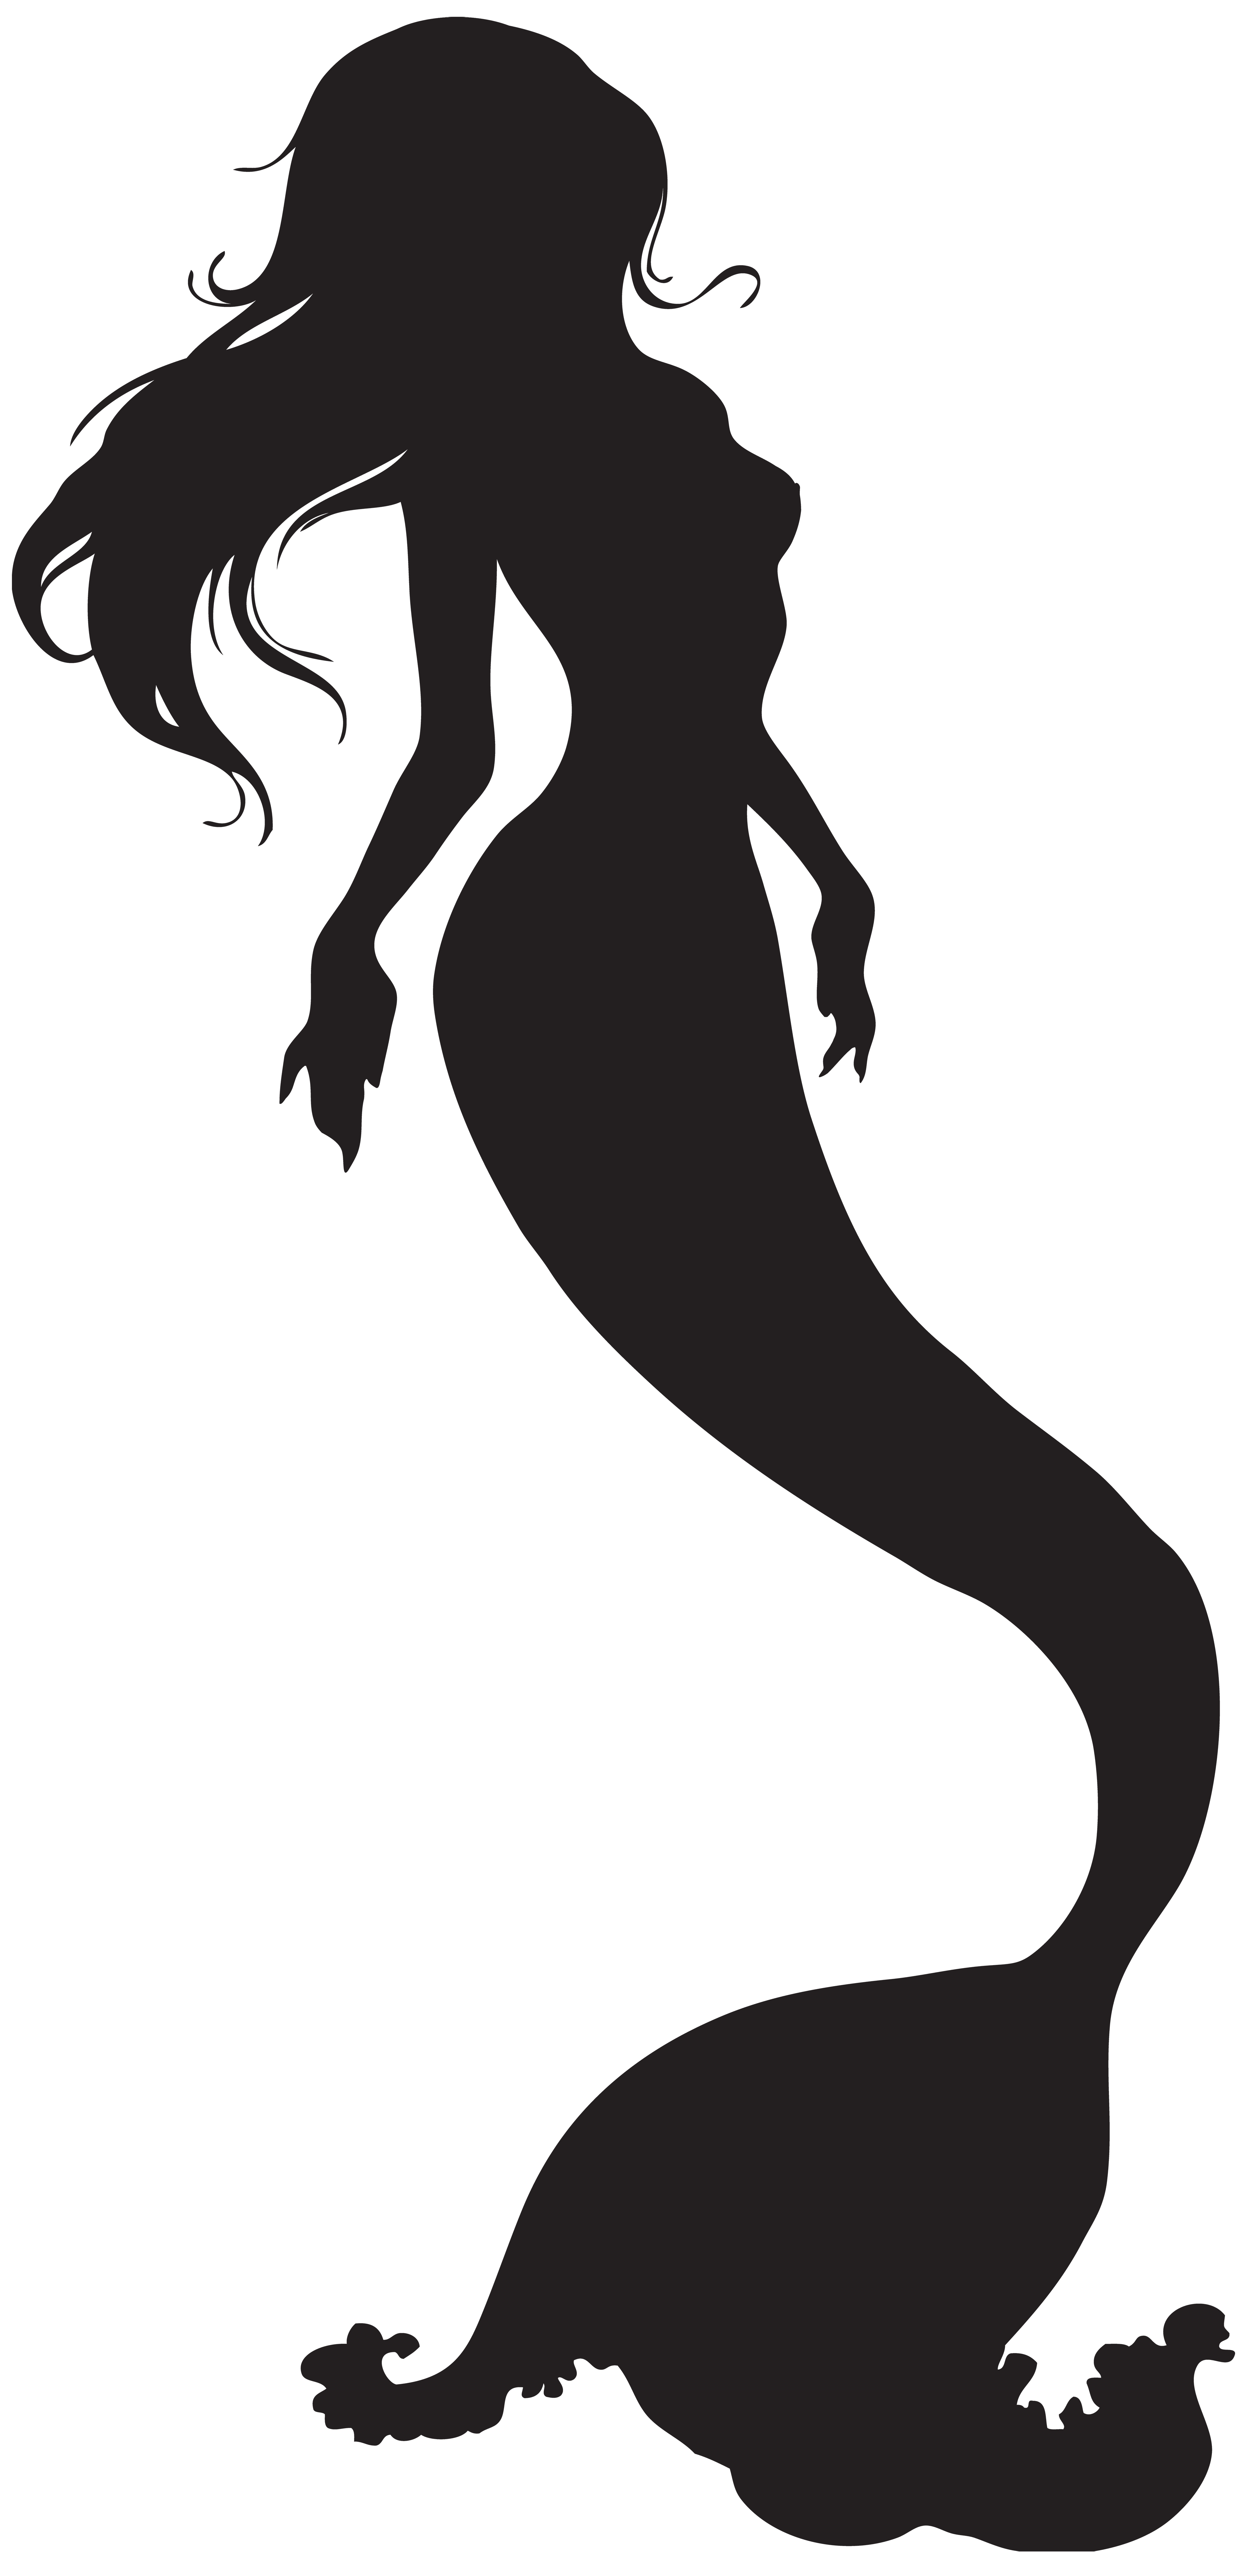 picture free Mermaid scalable vector graphics. Ariel svg black and white